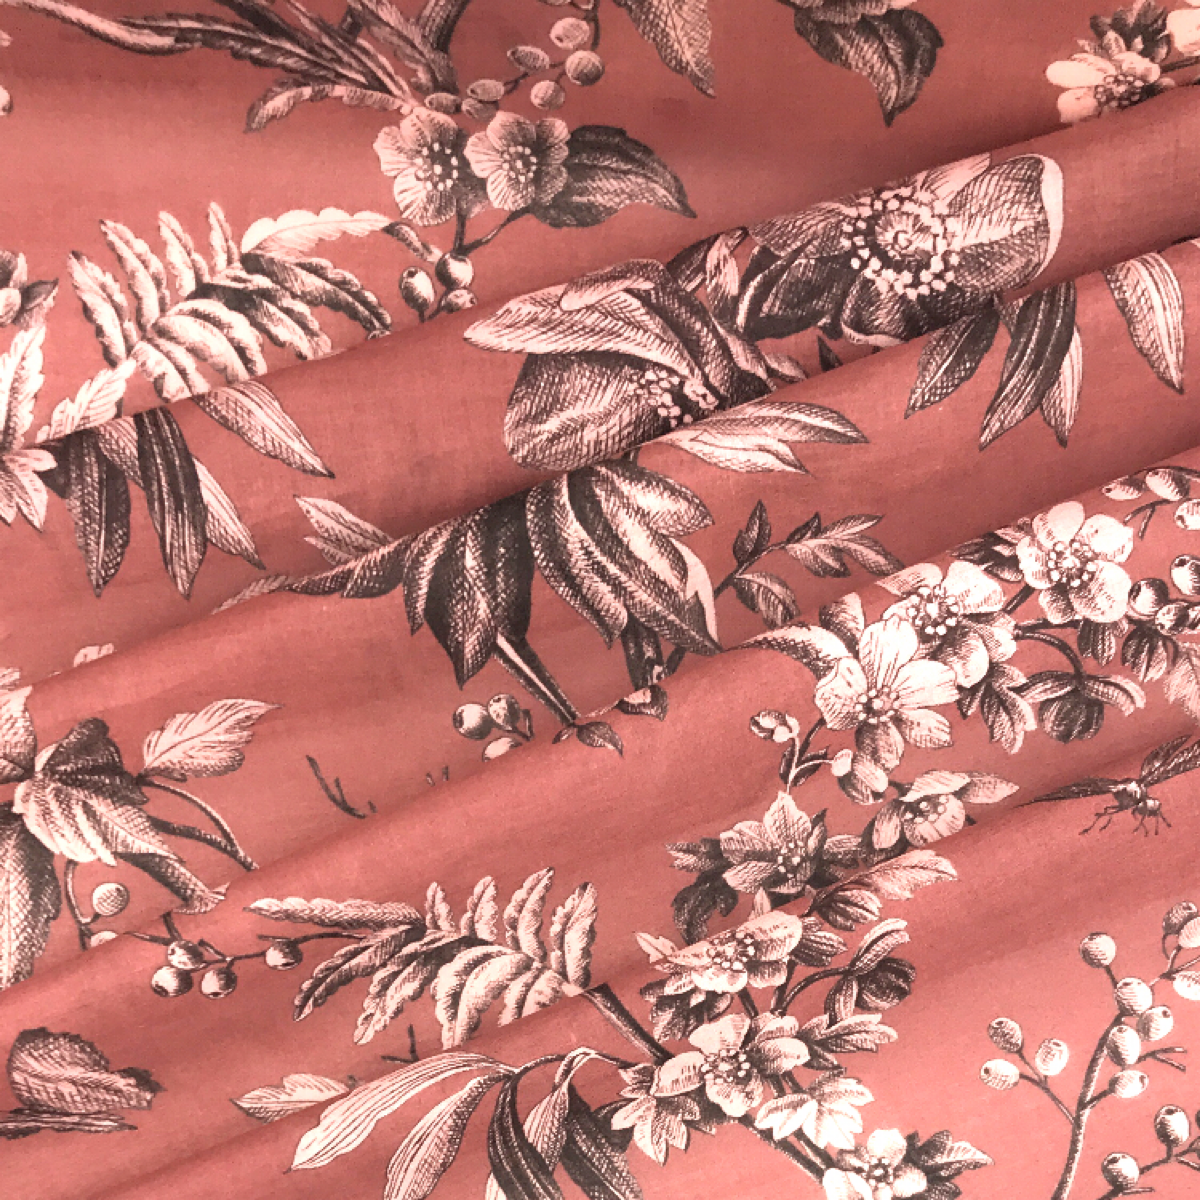 Muted Red Floral Printed Woven Textile by Beach & Body by Clerici Tessuto